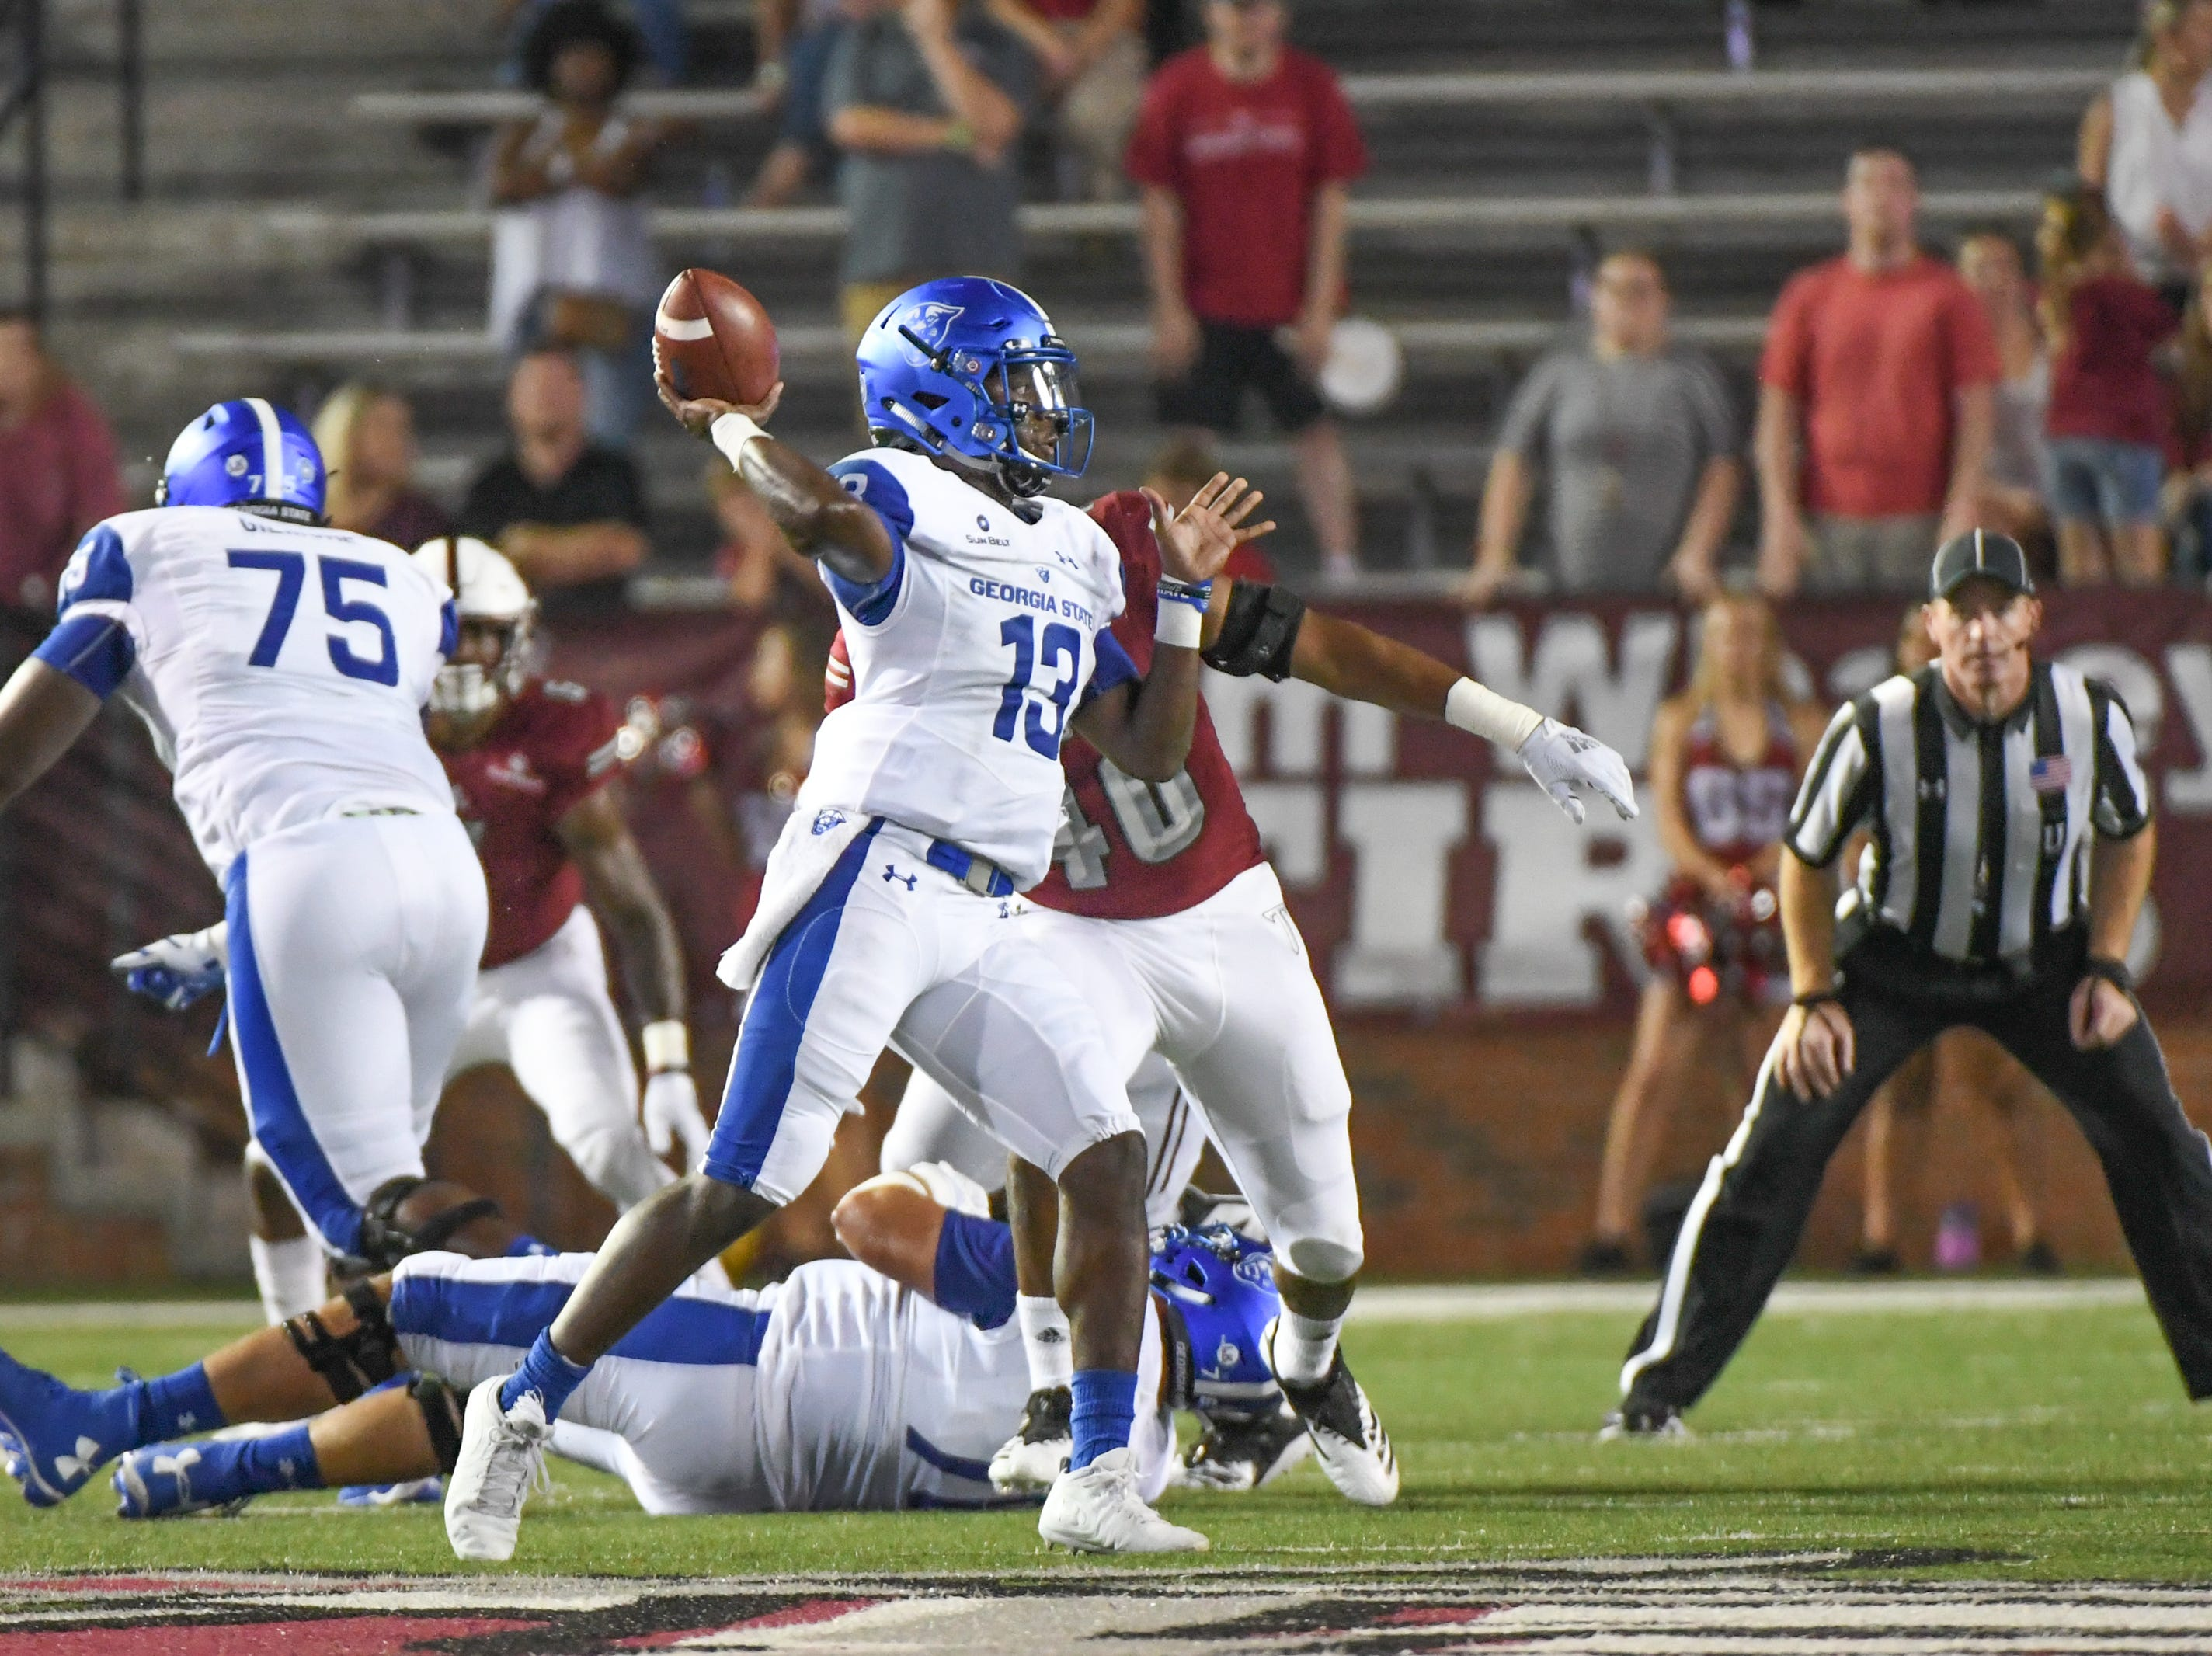 Georgia State Panthers quarterback Dan Ellington (13) drops back to pass at Veteran's Memorial Stadium in Troy, Ala., on Thursday, Oct. 4, 2018. (Chip Dillard/Special to the Montgomery Advertiser)